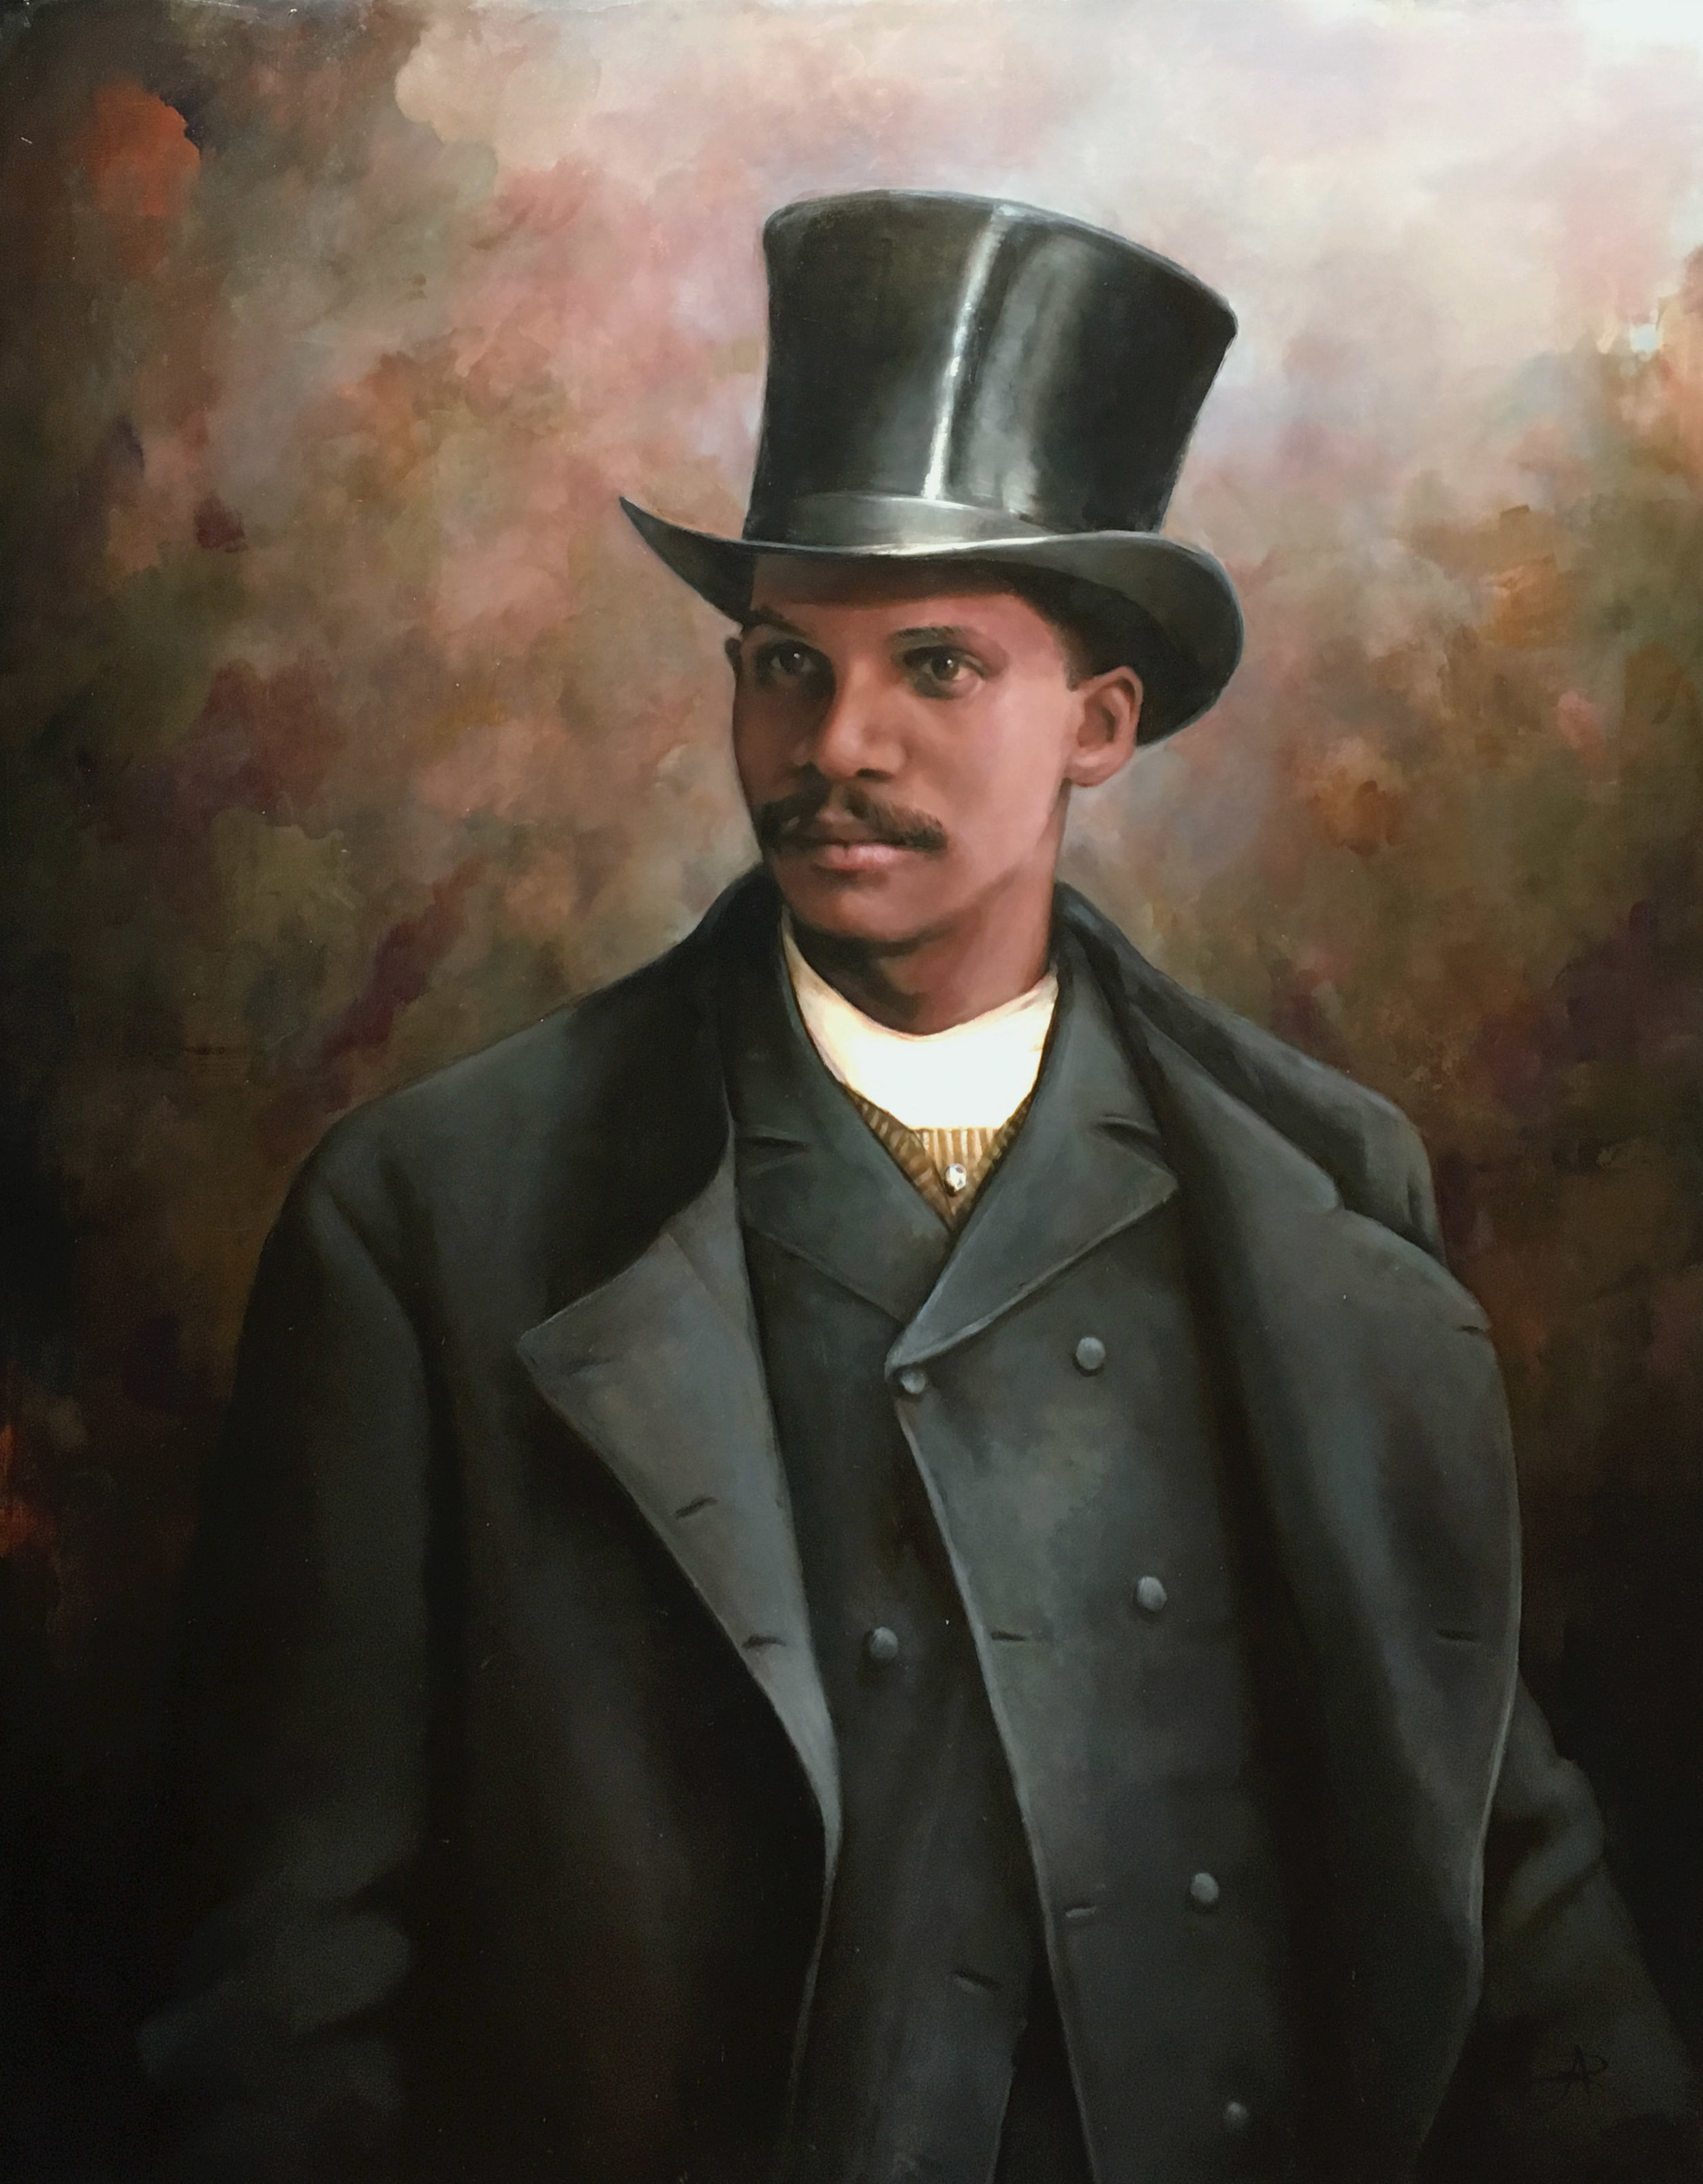 Rep. William Webb Ferguson, Oil on Linen, 2018